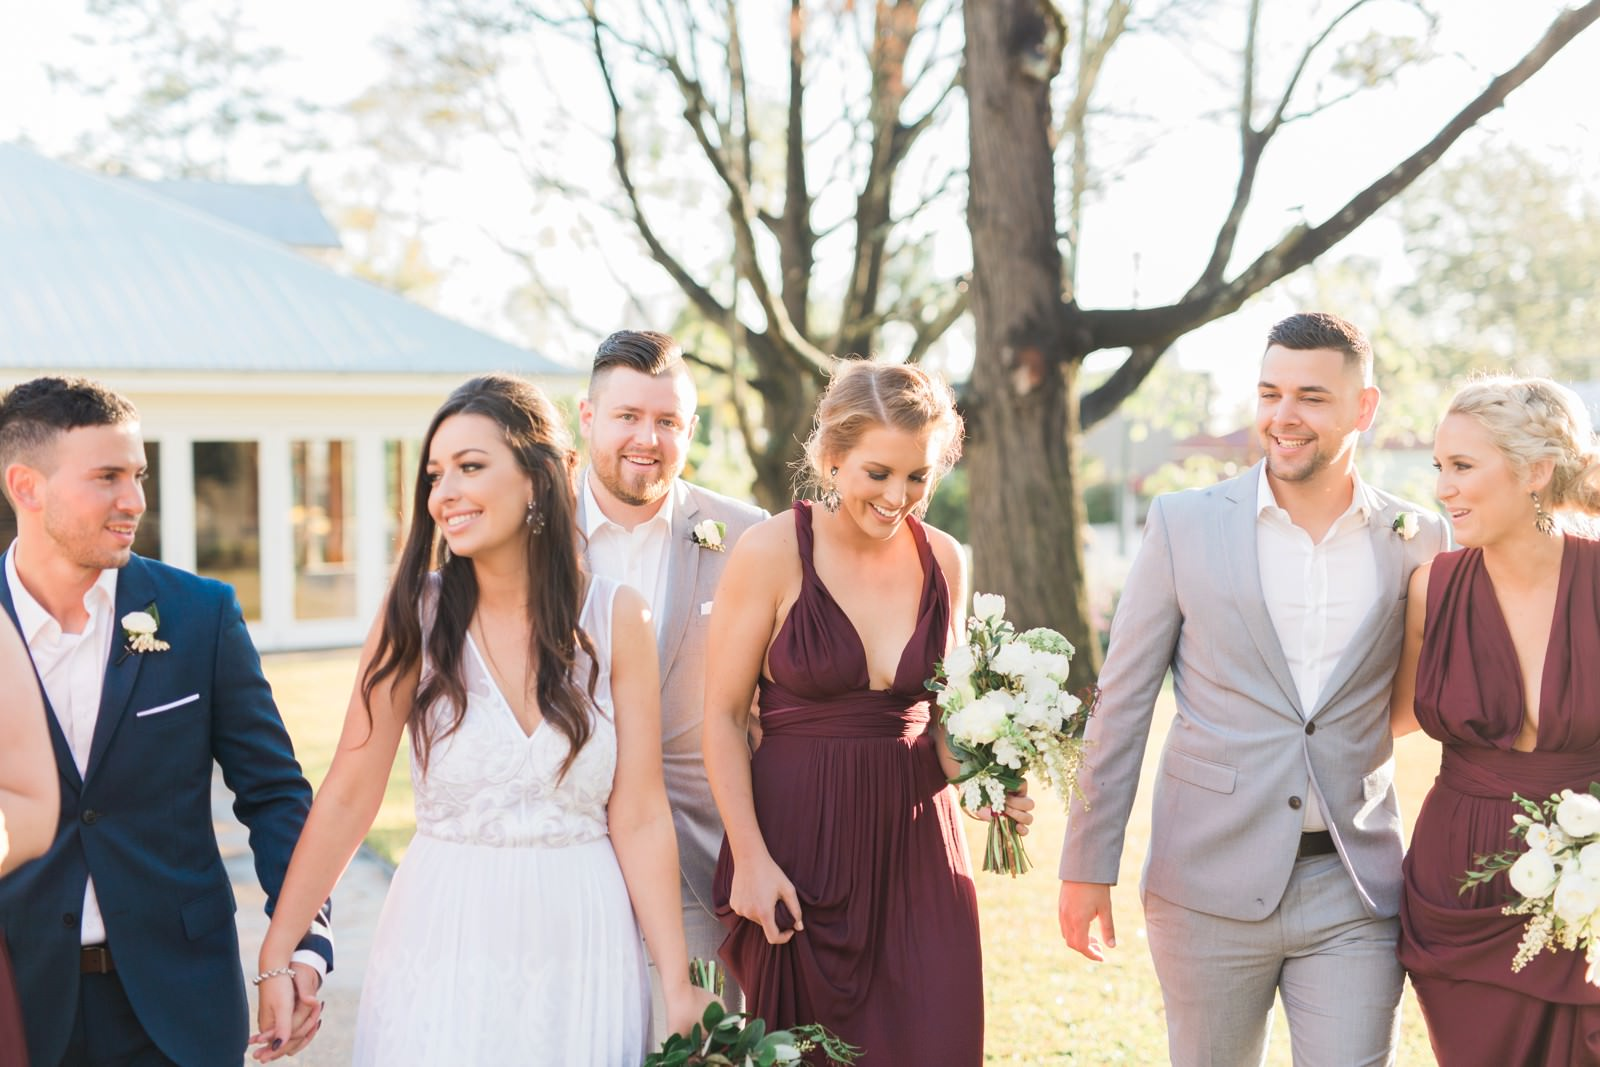 Hanworth House Brisbane wedding by Mario Colli Photography